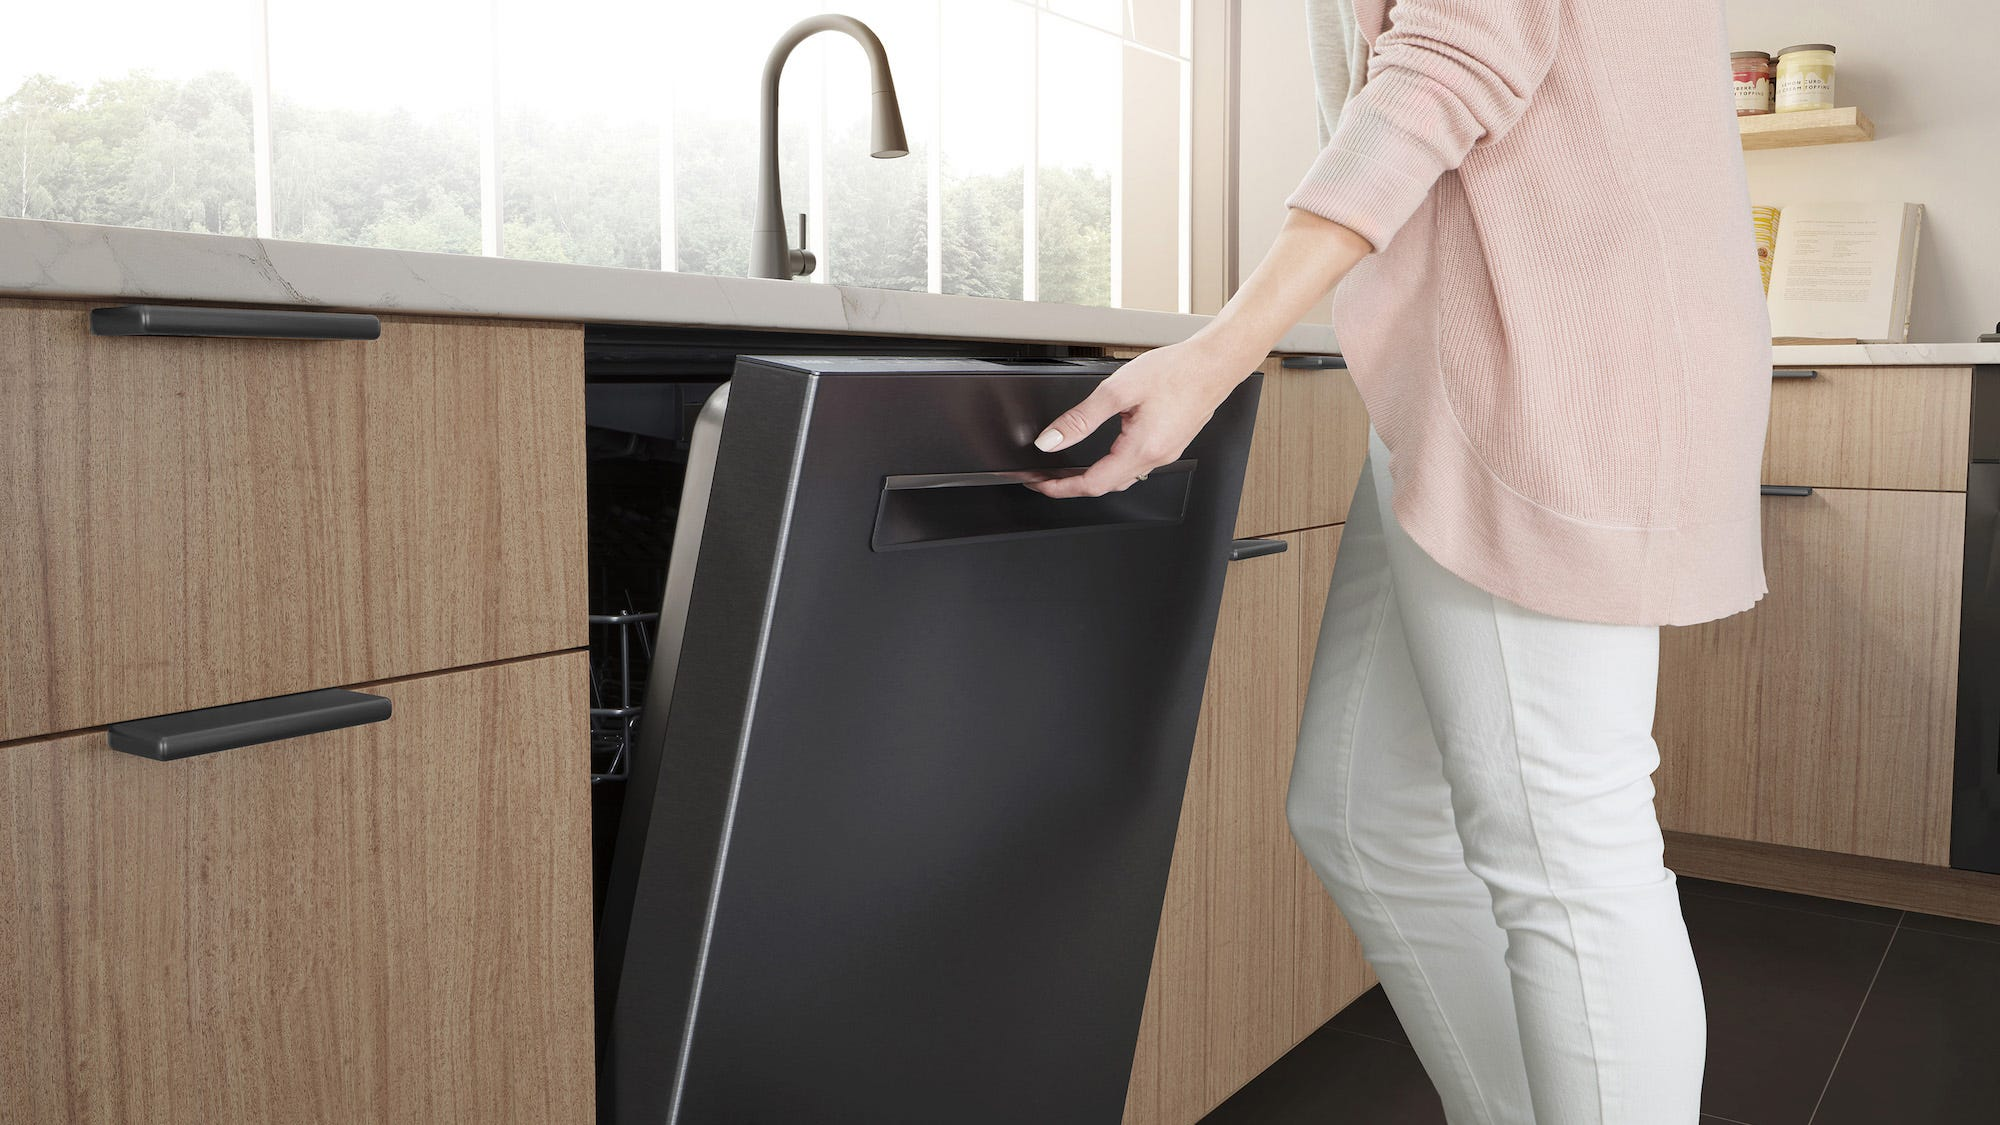 The best Black Friday appliance deals of 2018: Home Depot, Lowes, Best Buy, and Amazon